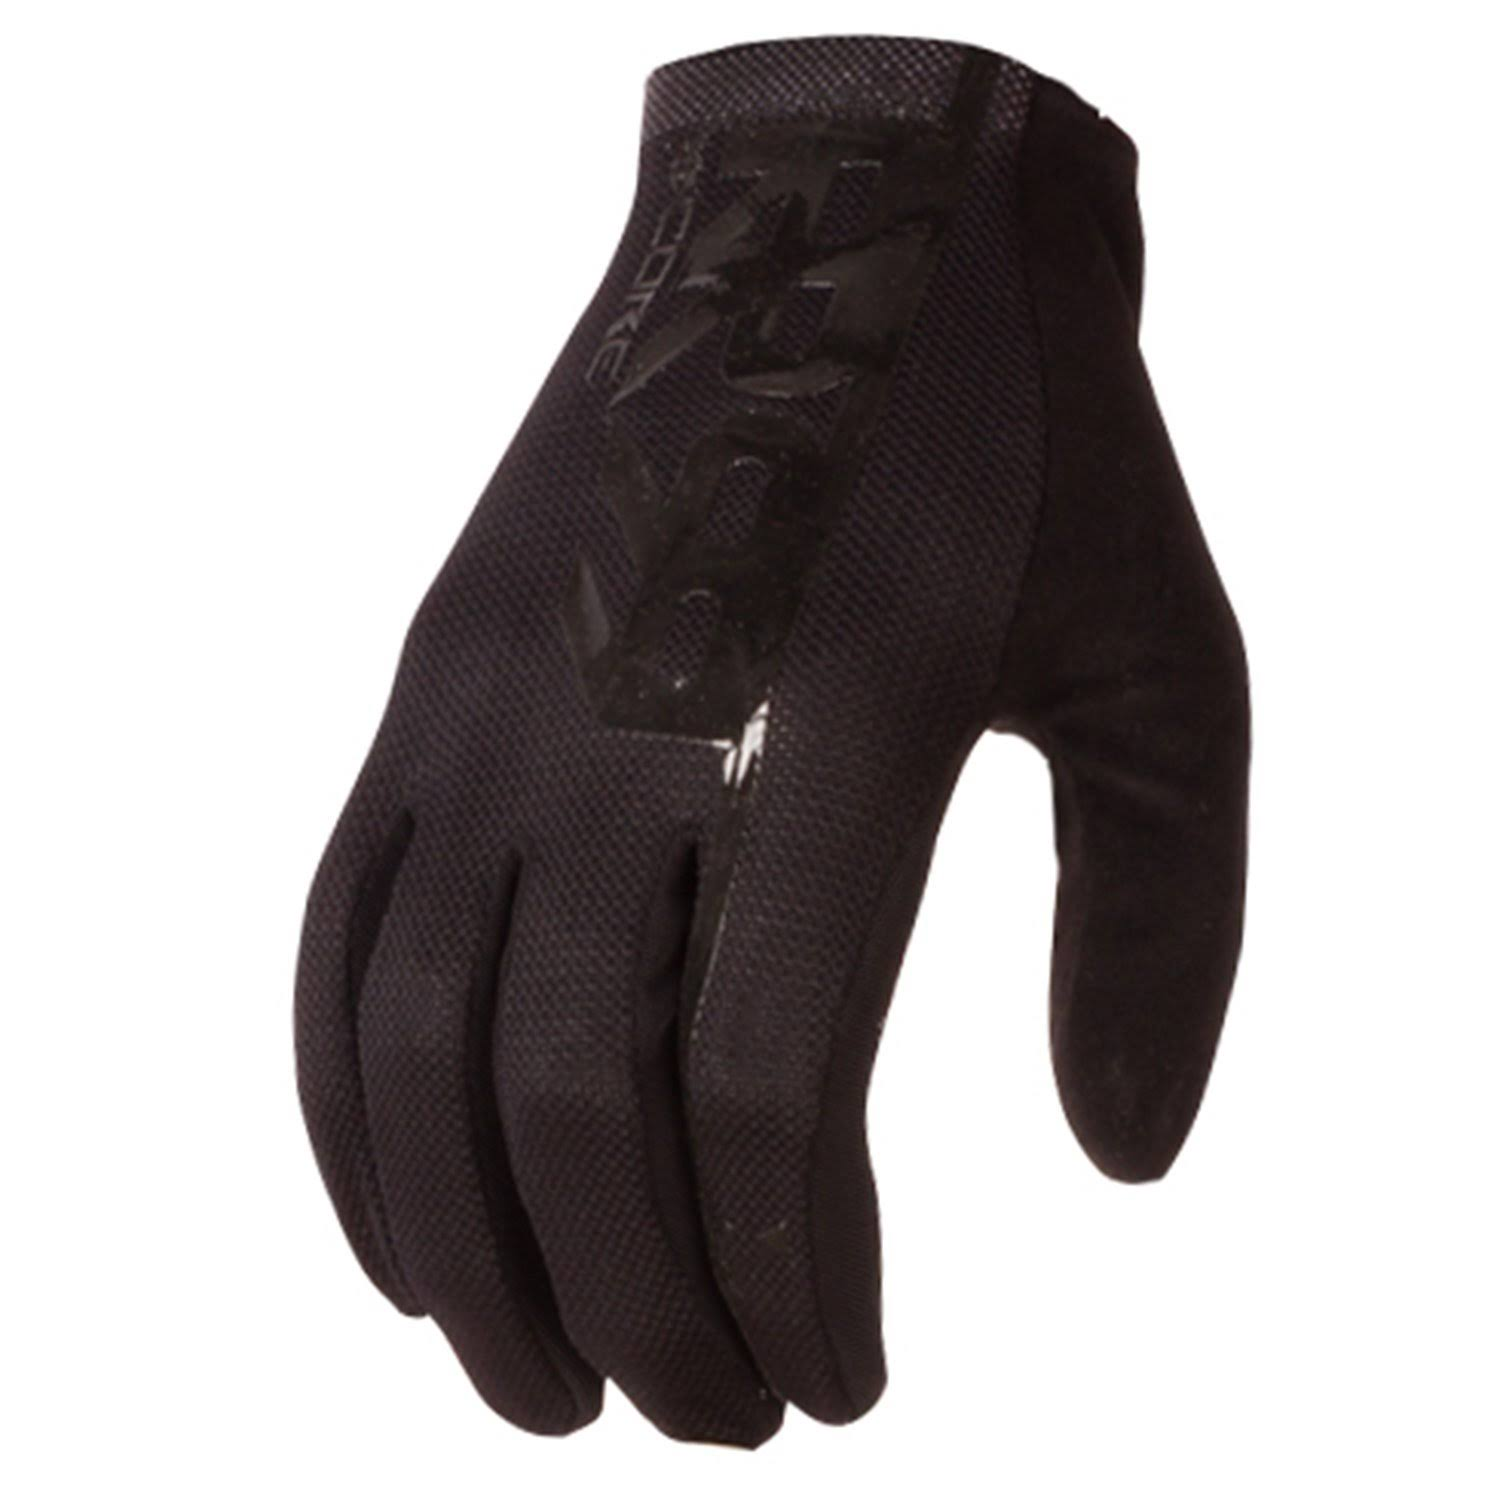 Royal Racing Core Gloves, Black/Black, Medium